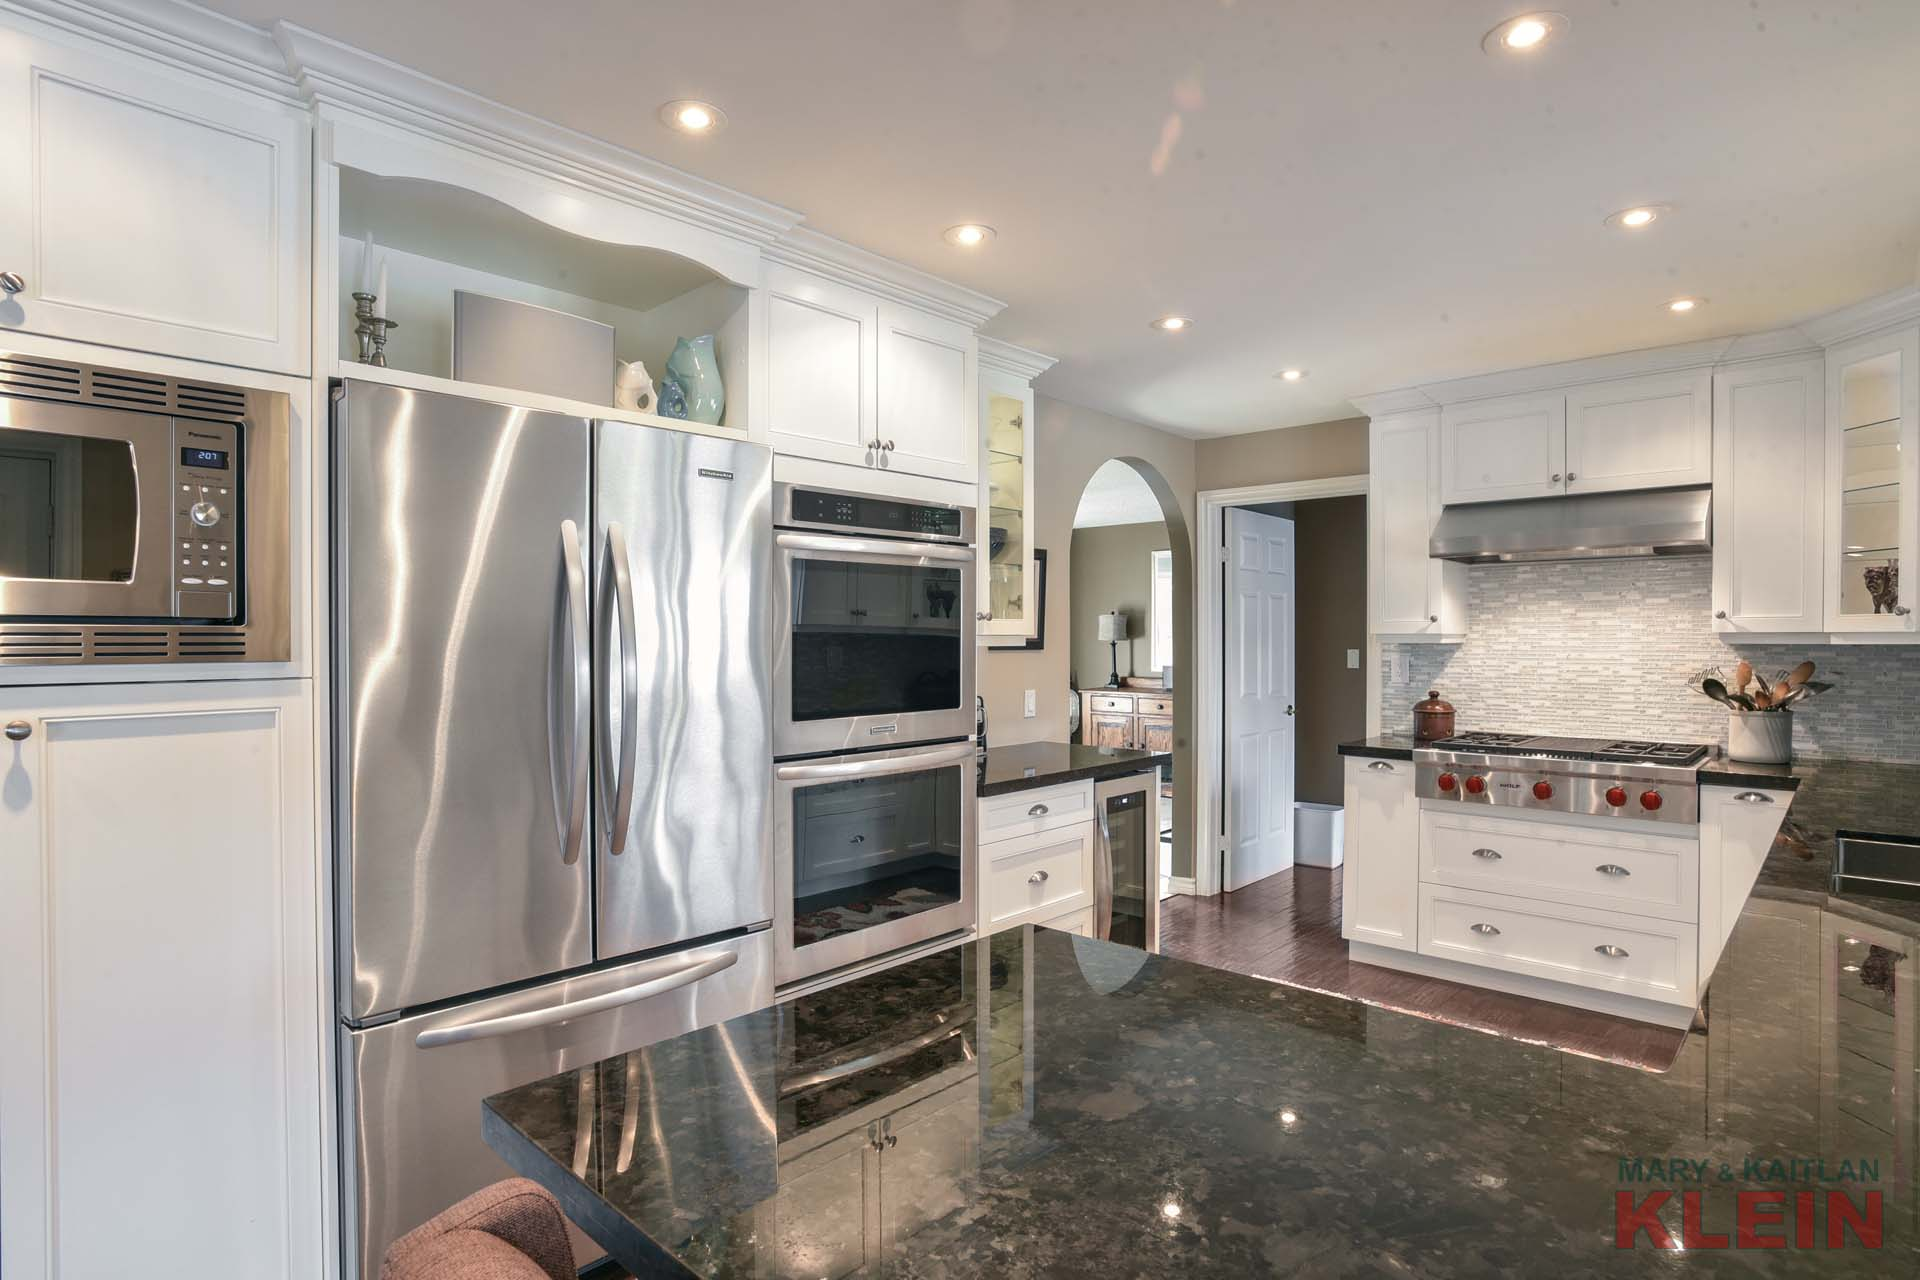 wolf stove, stainless steel appliances